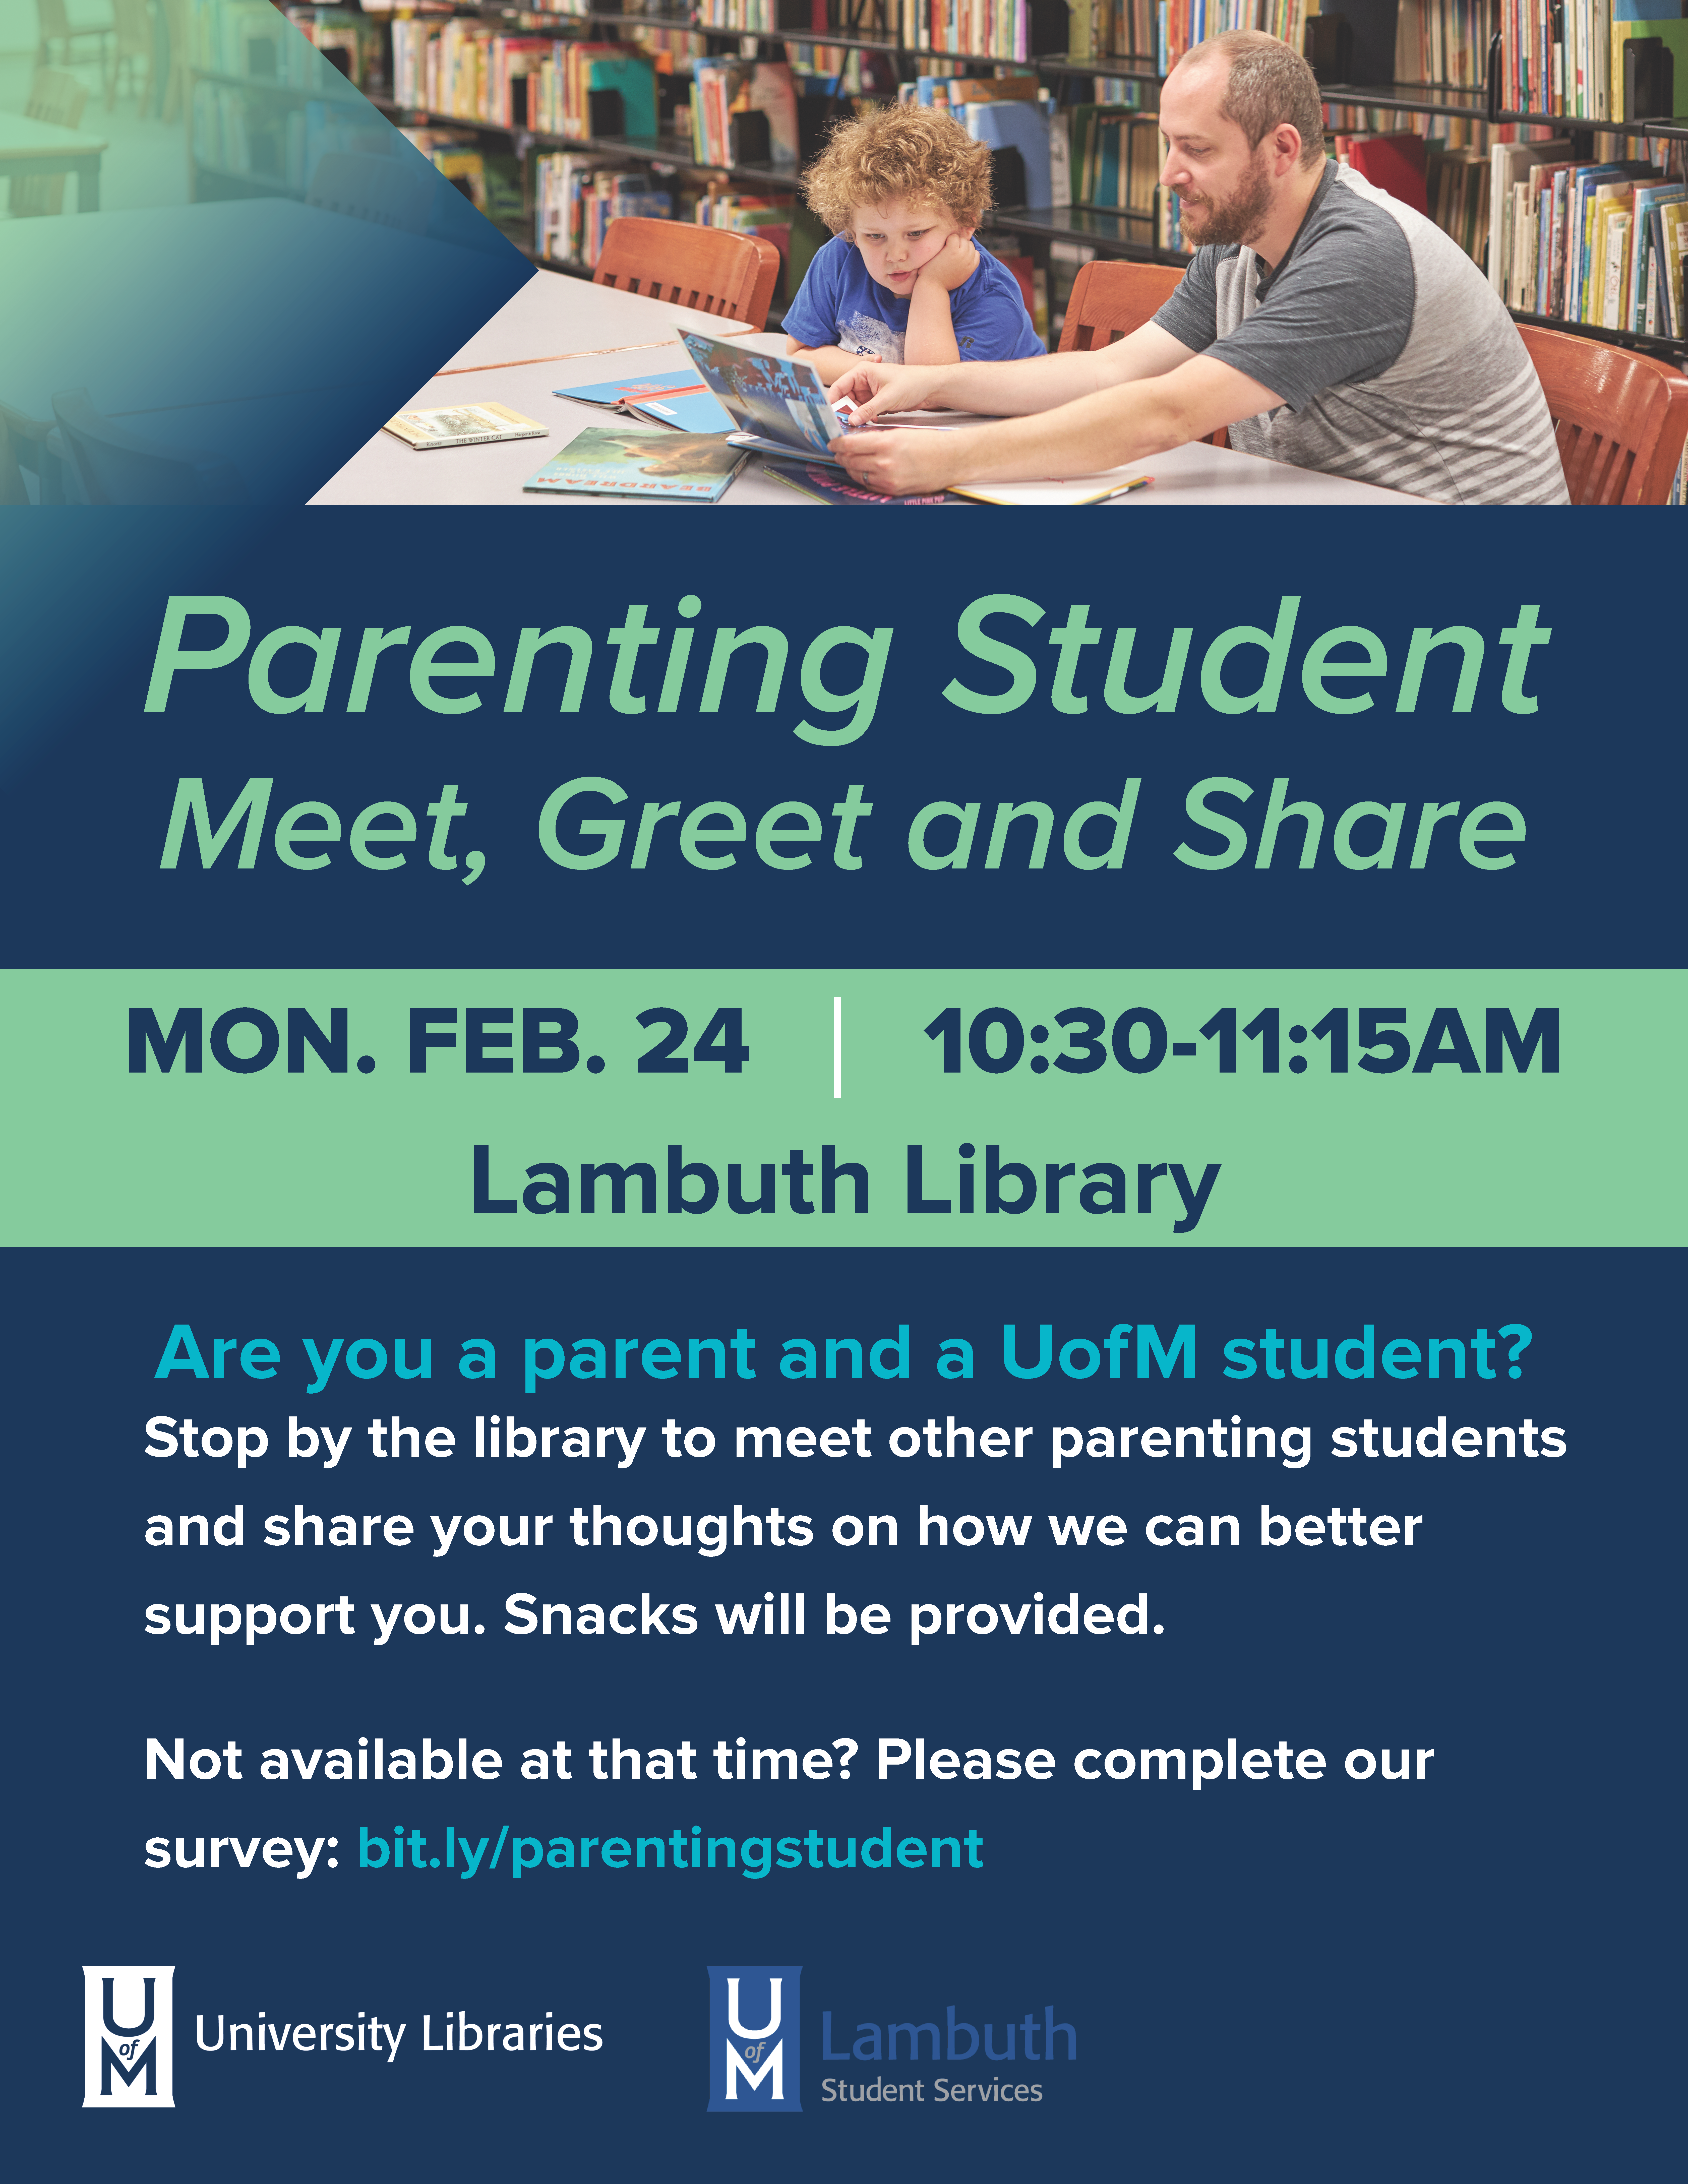 Parenting Student Meet, Greet and Share